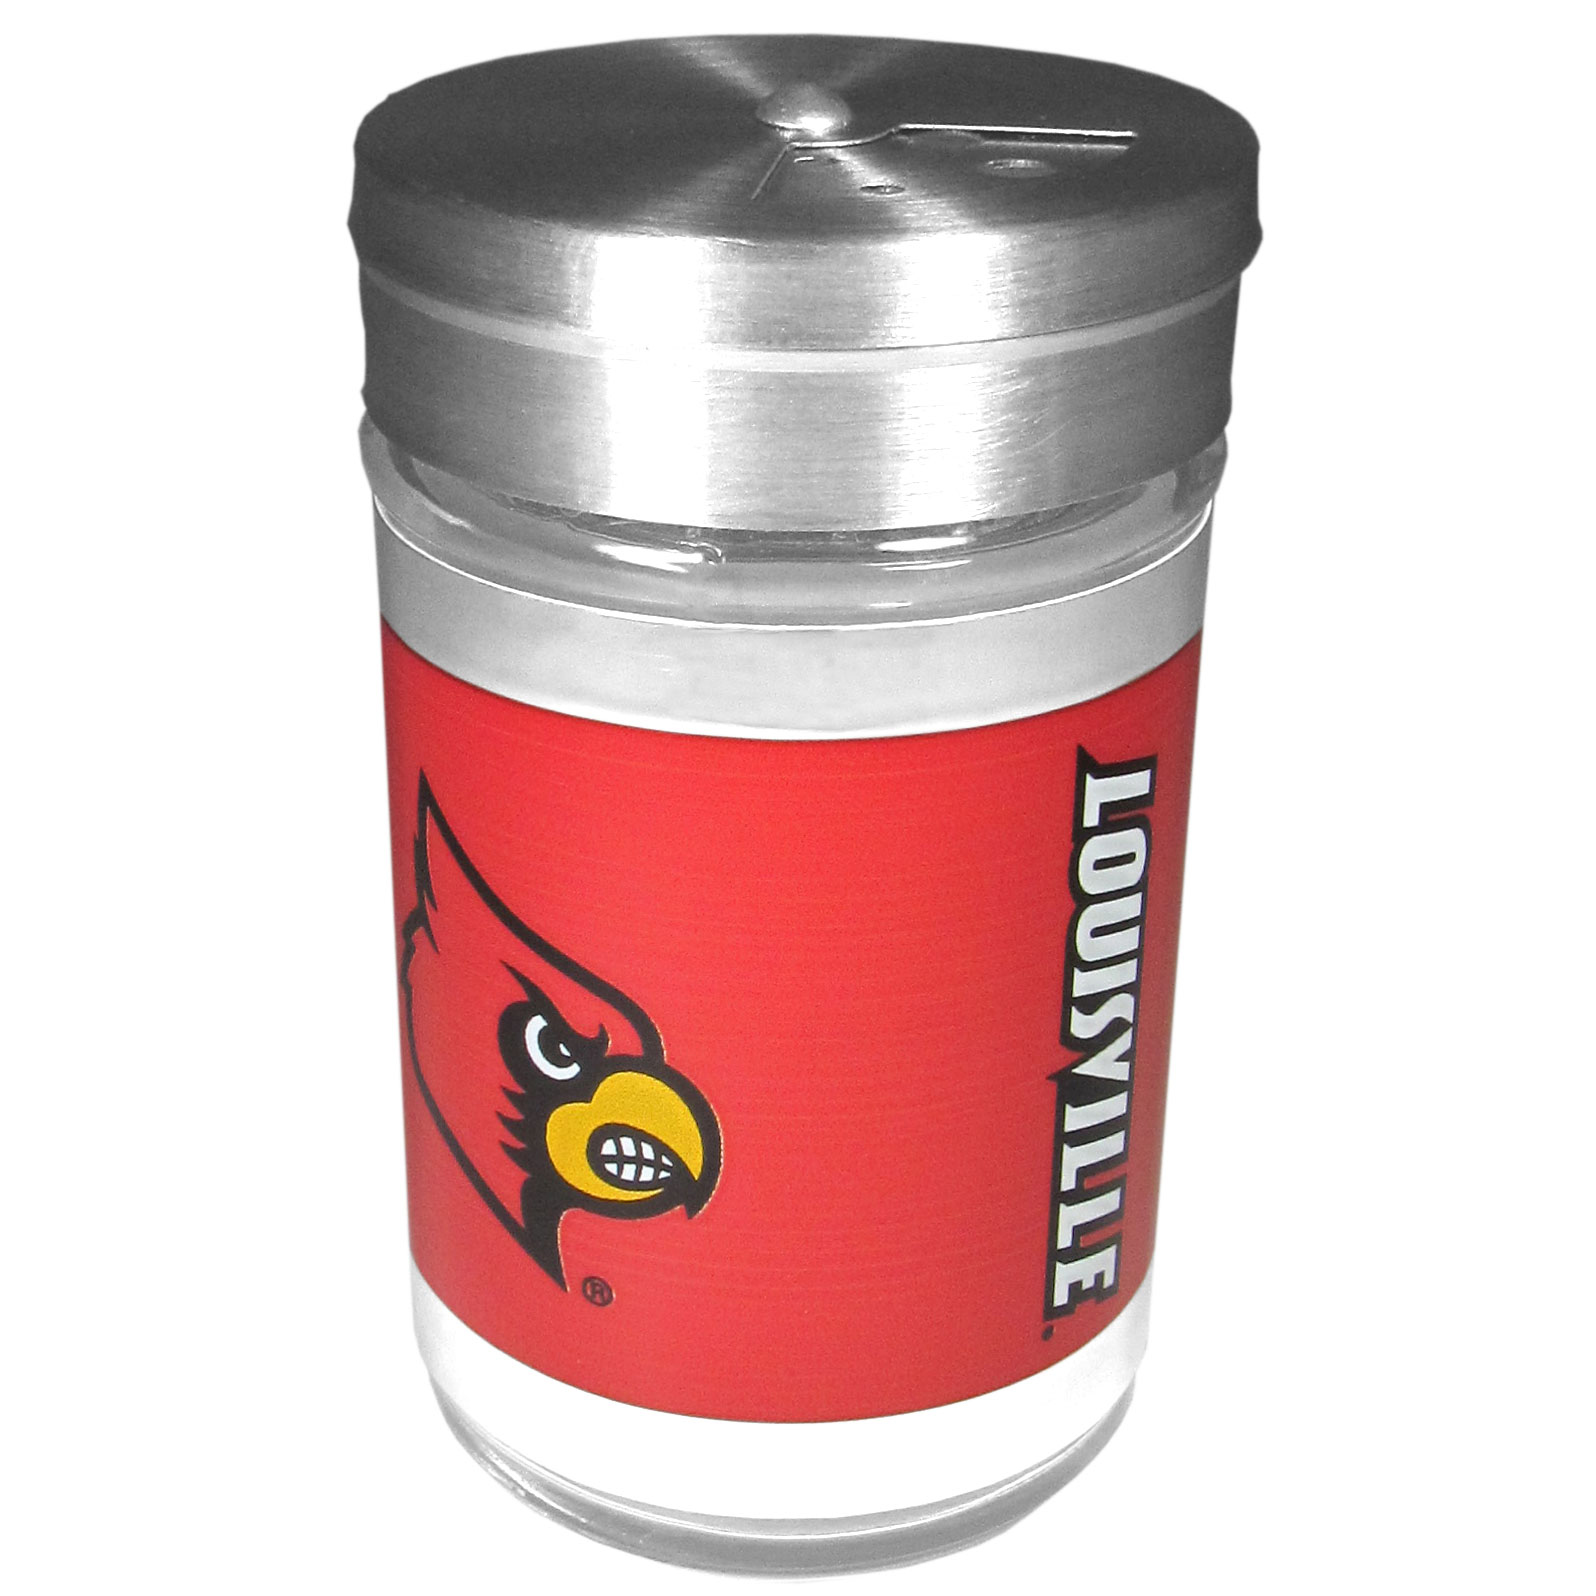 Louisville Cardinals Tailgater Season Shakers - Spice it up with our Louisville Cardinals tailgater season shakers! This compact shaker is 2 inch tall with a twist top that closes off the holes at the top making it perfect for travel preventing those messy spills. The shaker has wide holes perfect for keeping your pepper seeds or cheese toppings. The bright team graphics will make you the envy of the other fans while you are grilling up your tailgating goodies.